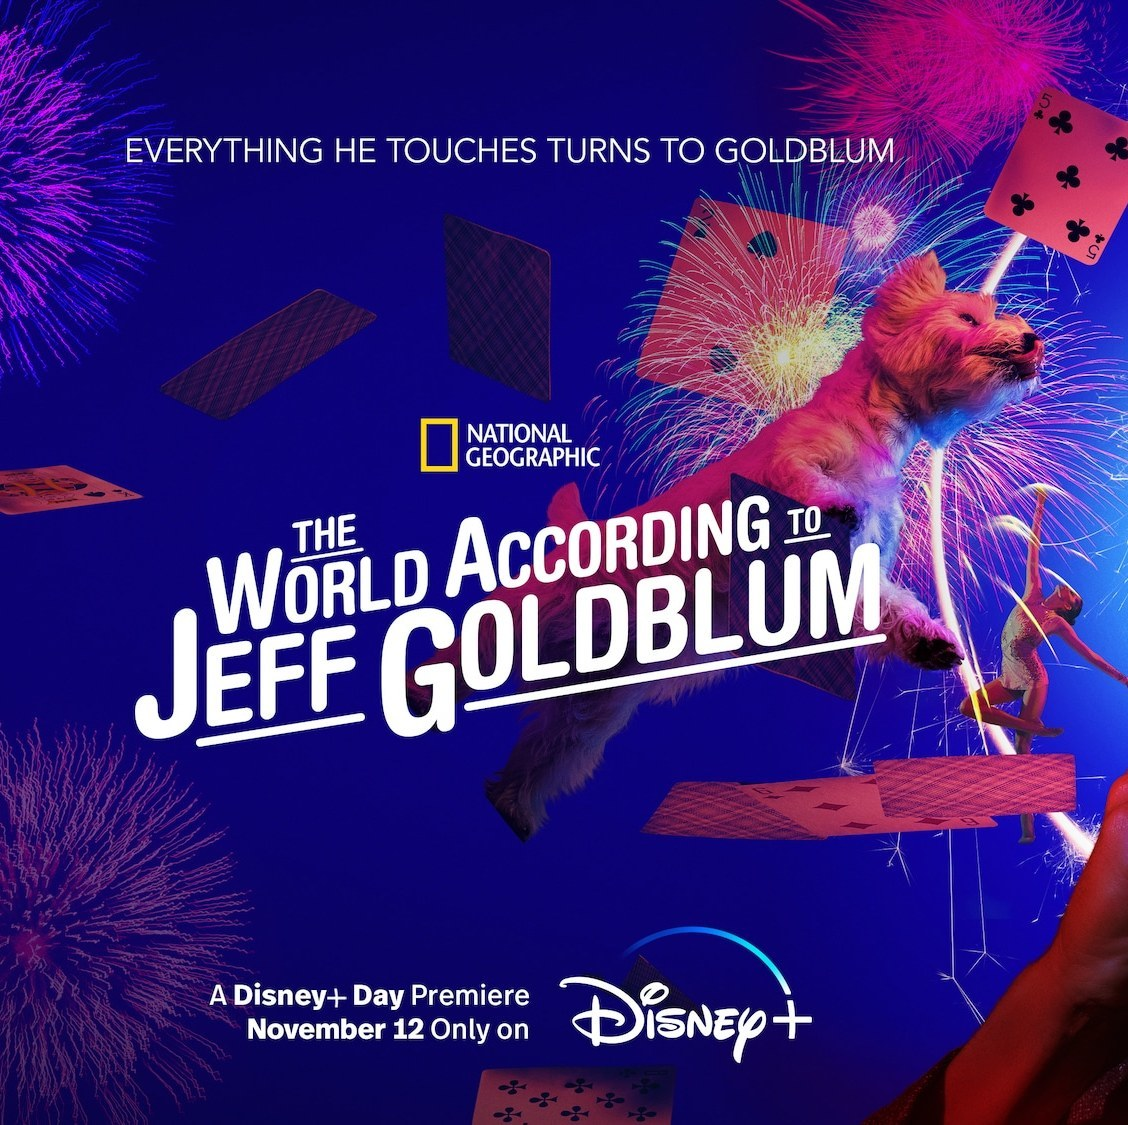 IN CELEBRATION OF JEFF GOLDBLUM'S BIRTHDAY, DISNEY+ RELEASES THE OFFICIAL TRAILER AND KEY ART FOR THE SECOND SEASON OF 'THE WORLD ACCORDING TO JEFF GOLDBLUM'